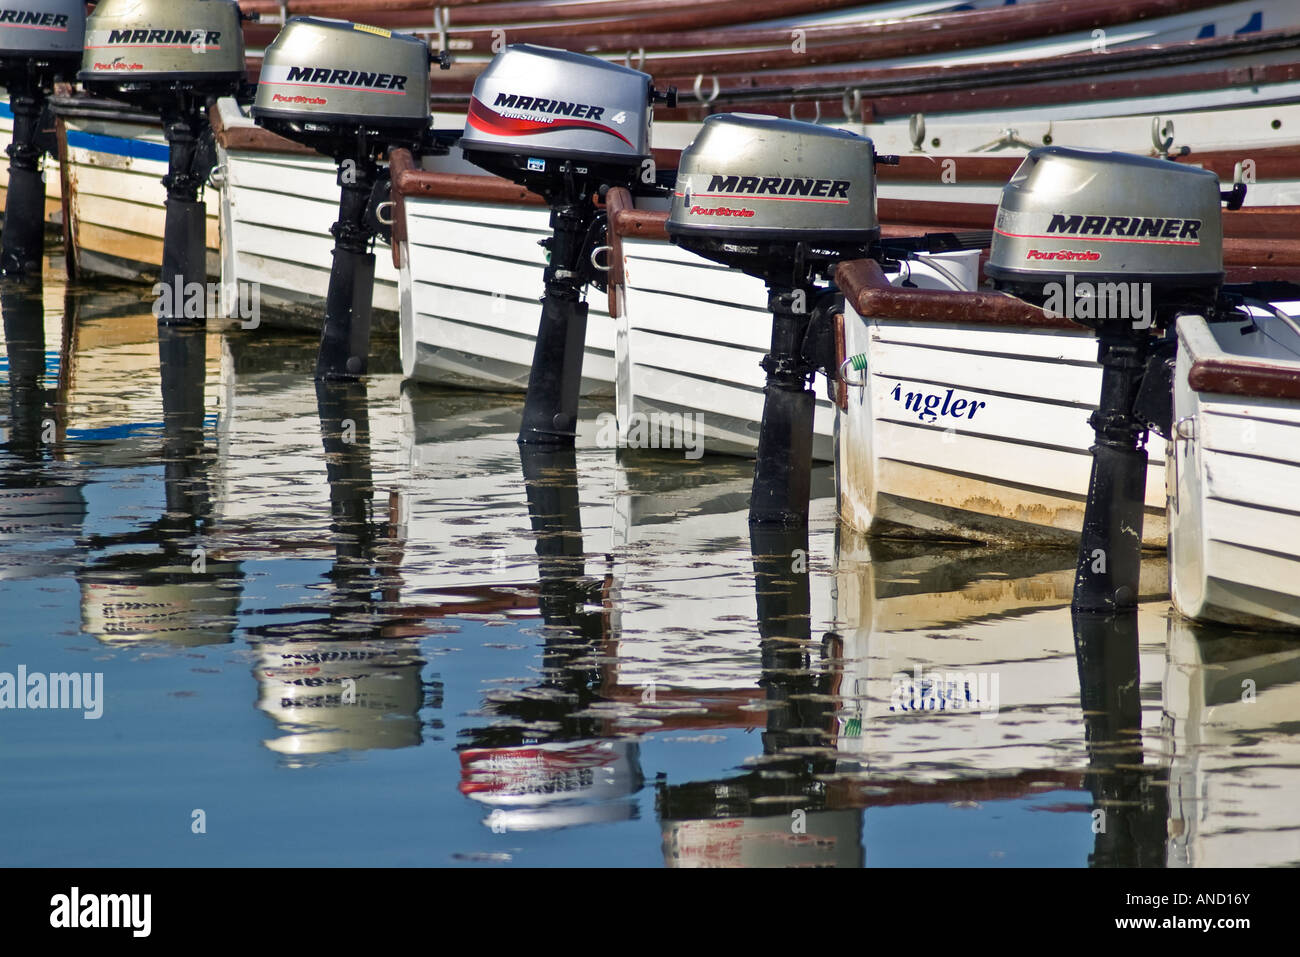 Outboard motors on dinghies - Stock Image